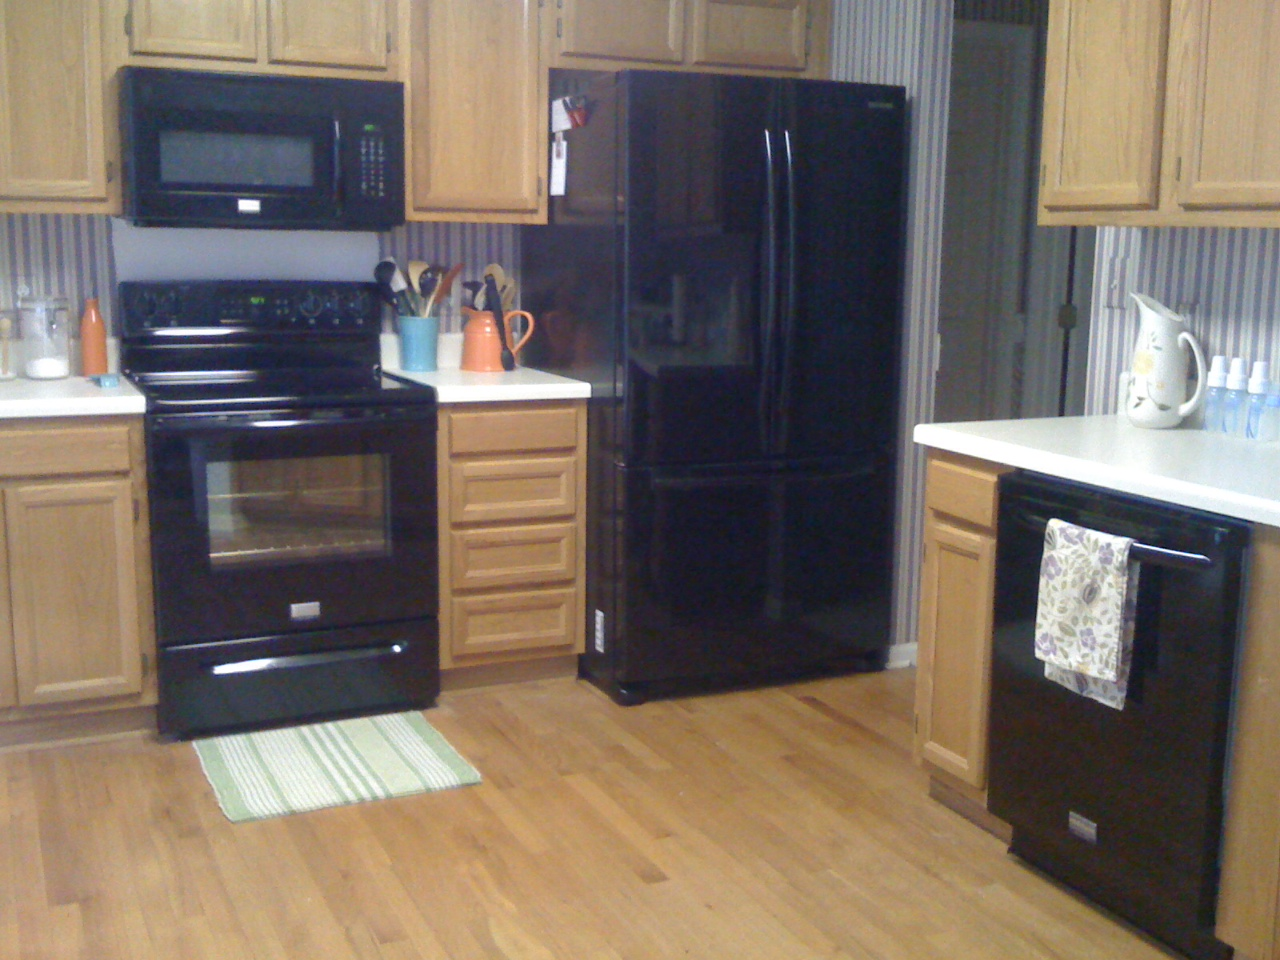 Kitchen appliances black kitchen appliances for Kitchens with black appliances